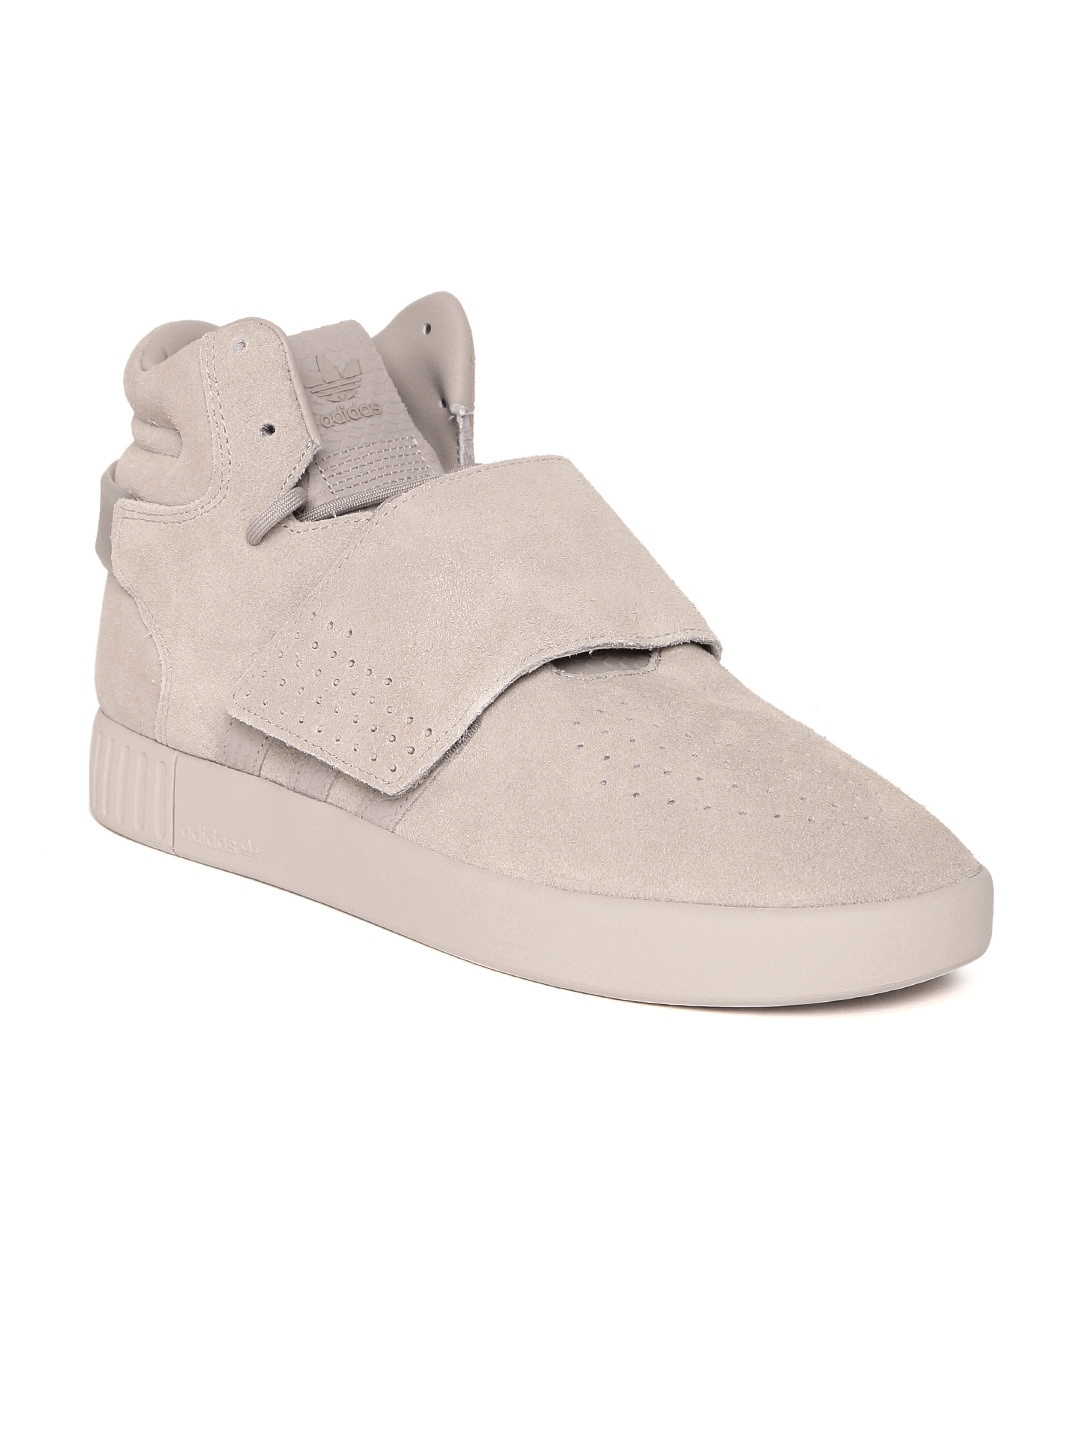 best website 6c4a6 5431b ADIDAS Originals Men Taupe TUBULAR INVADER STRAP Leather Mid-Top Sneakers